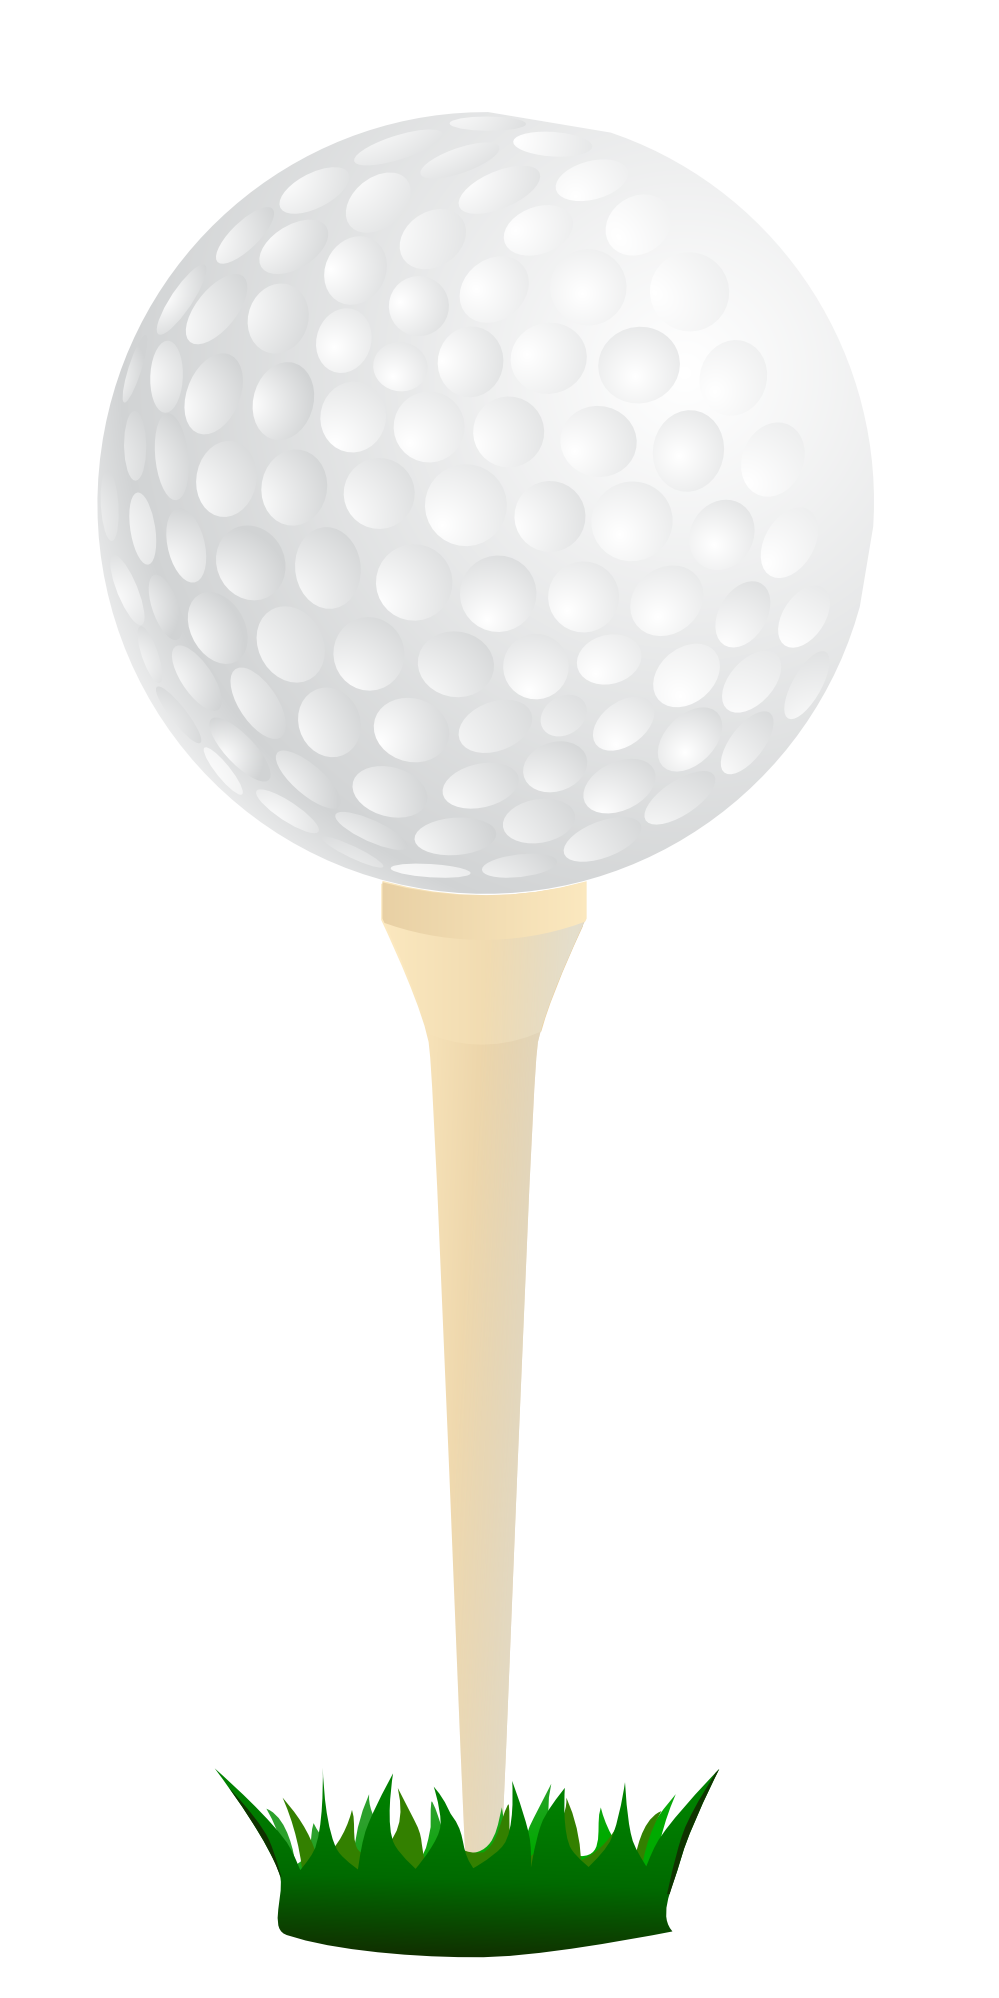 Golf Ball Clip Art Png | Clipart Panda - Free Clipart Images